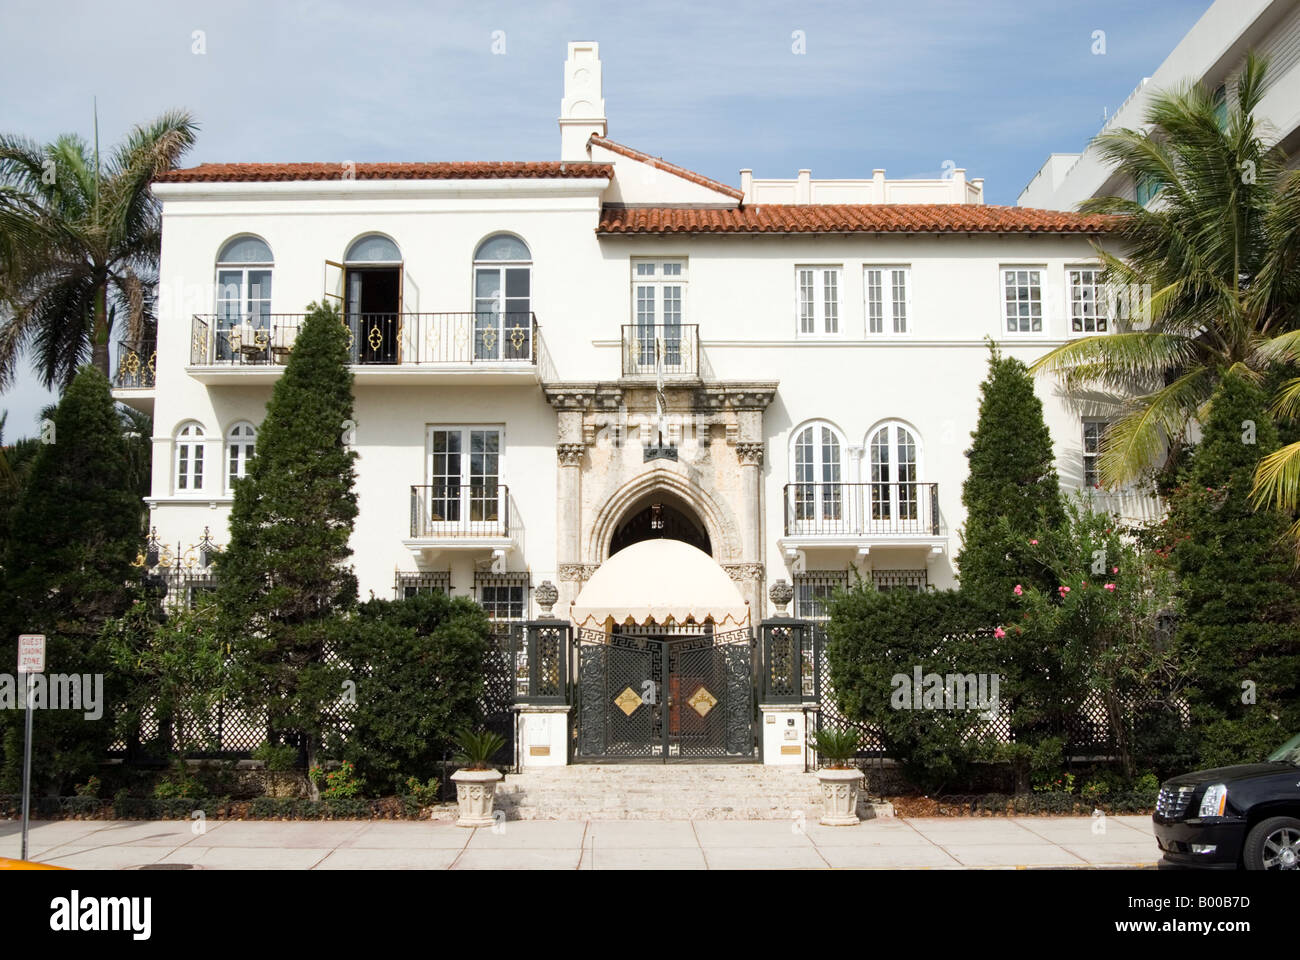 Casa casuarina the former home of gianni versace on ocean for Gianni versace home